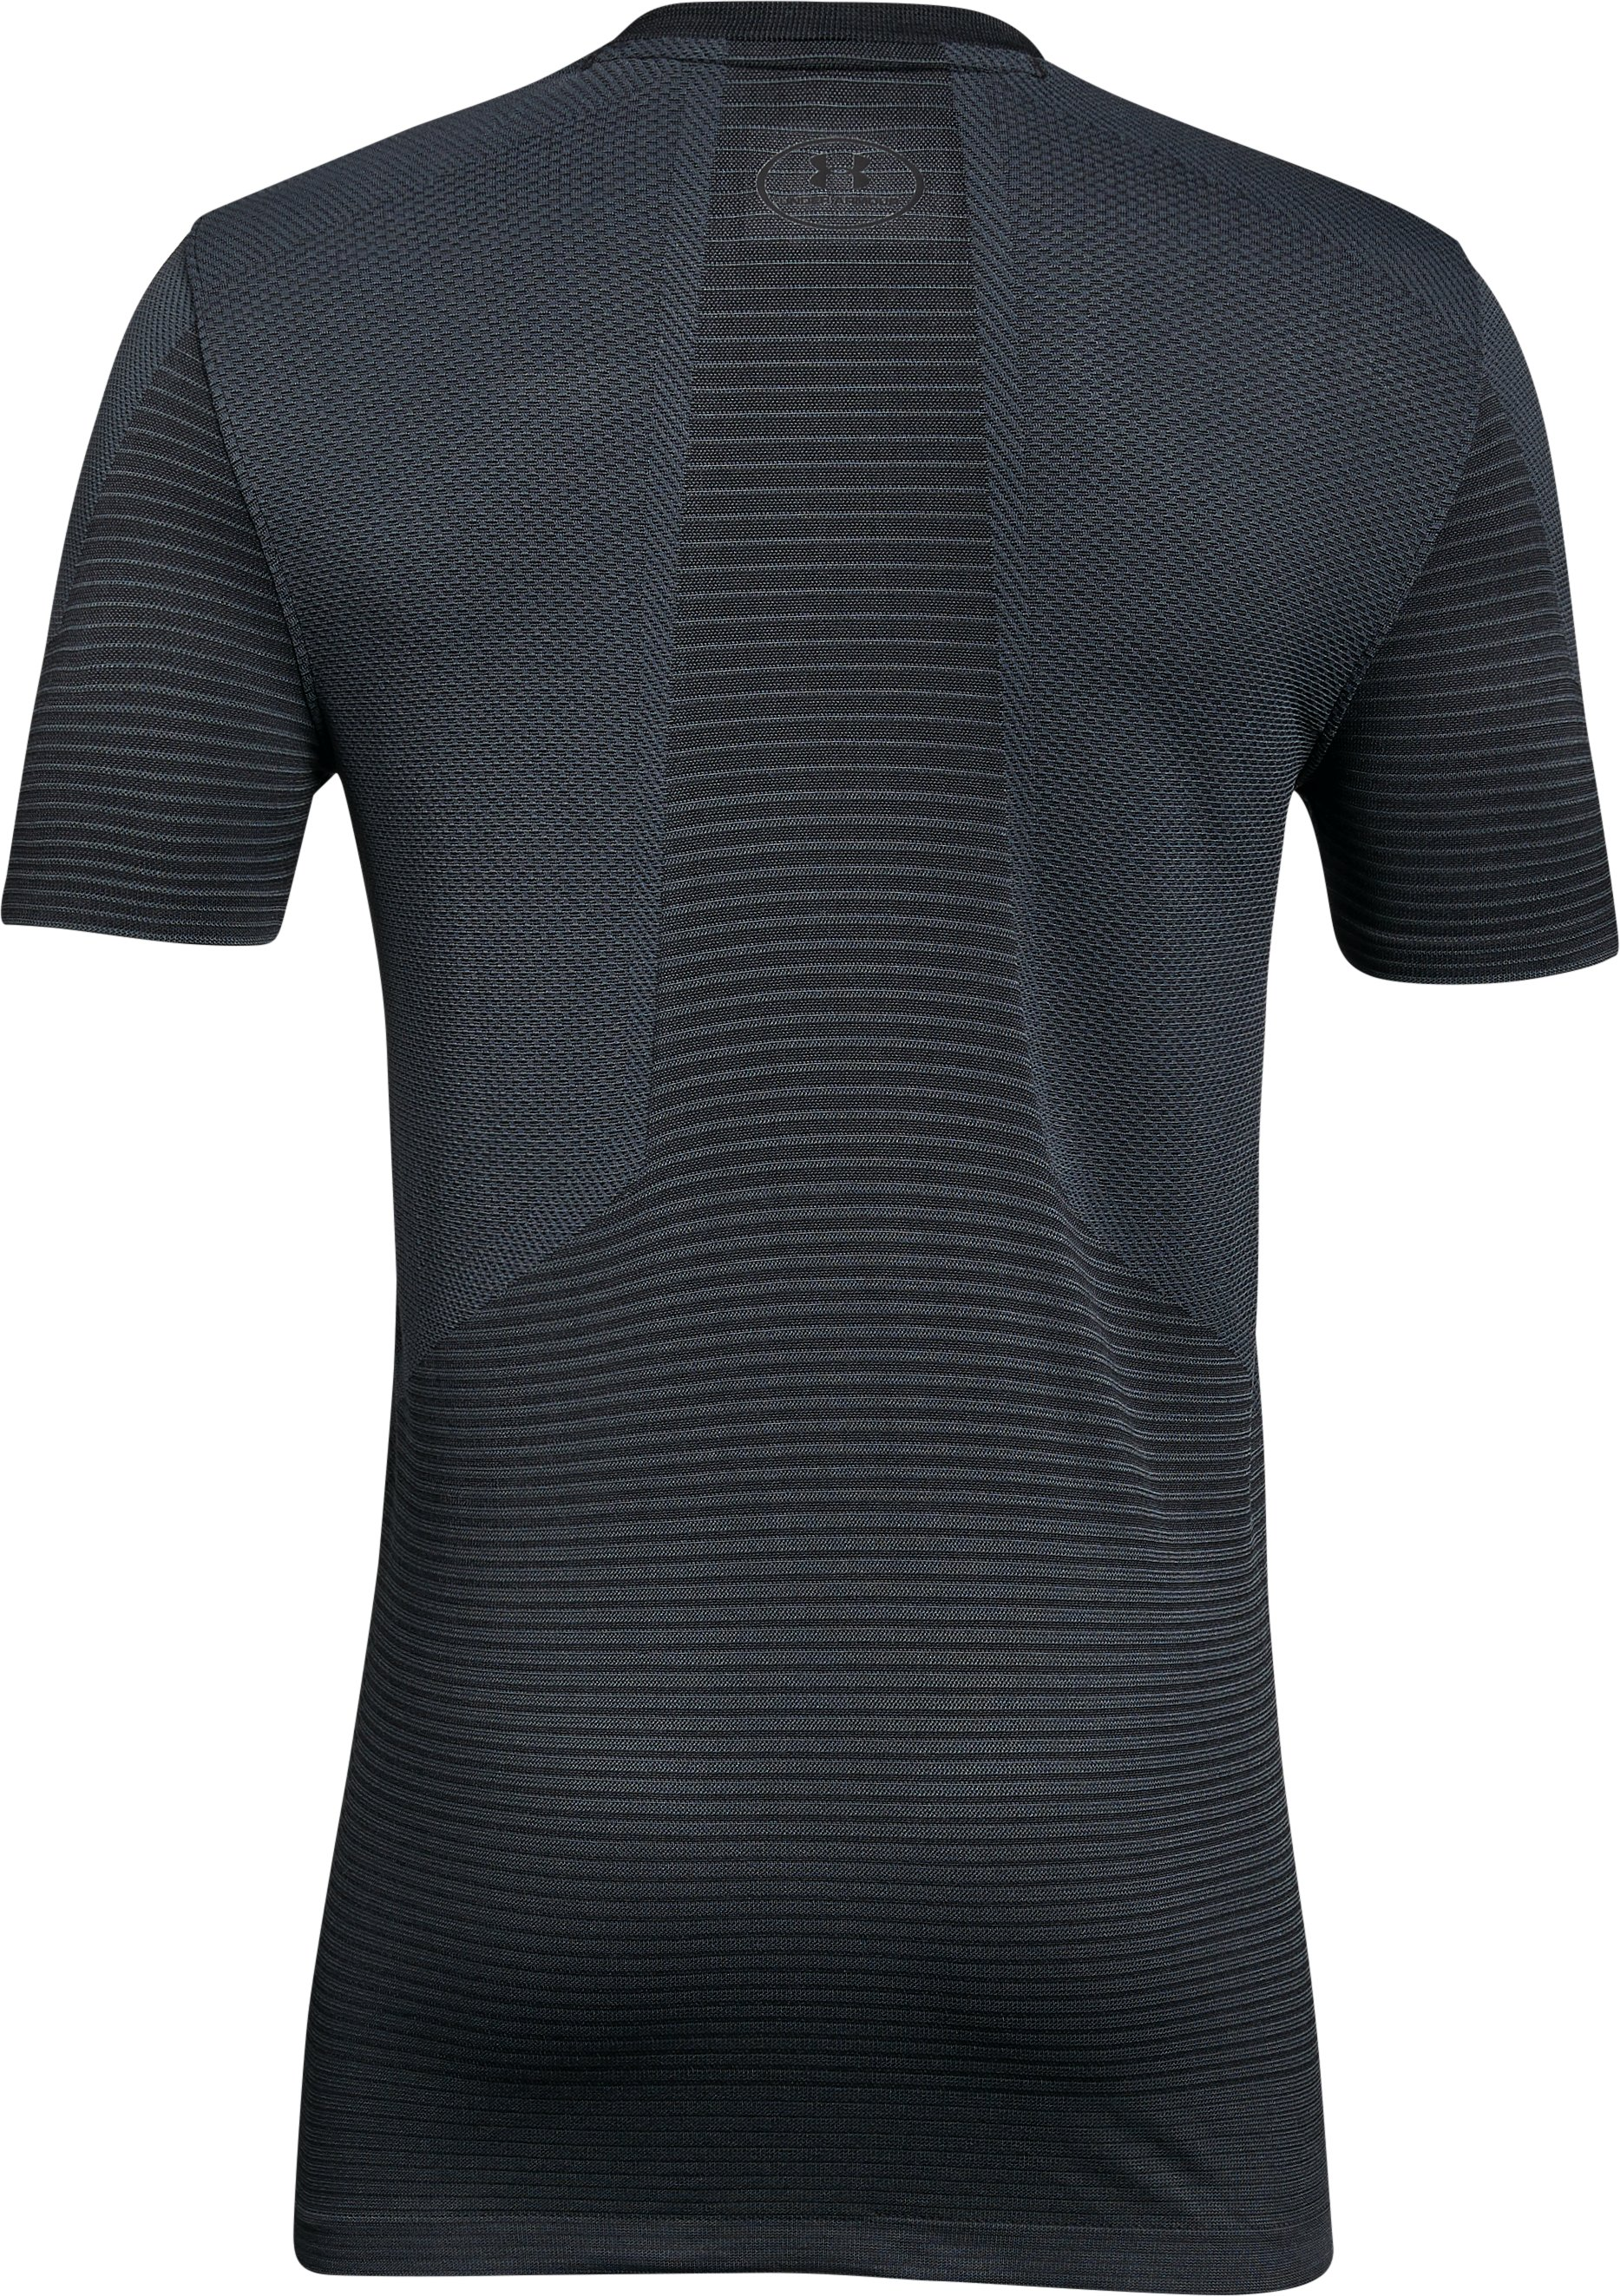 Boys' UA X Level Seamless T-Shirt, STEALTH GRAY, undefined